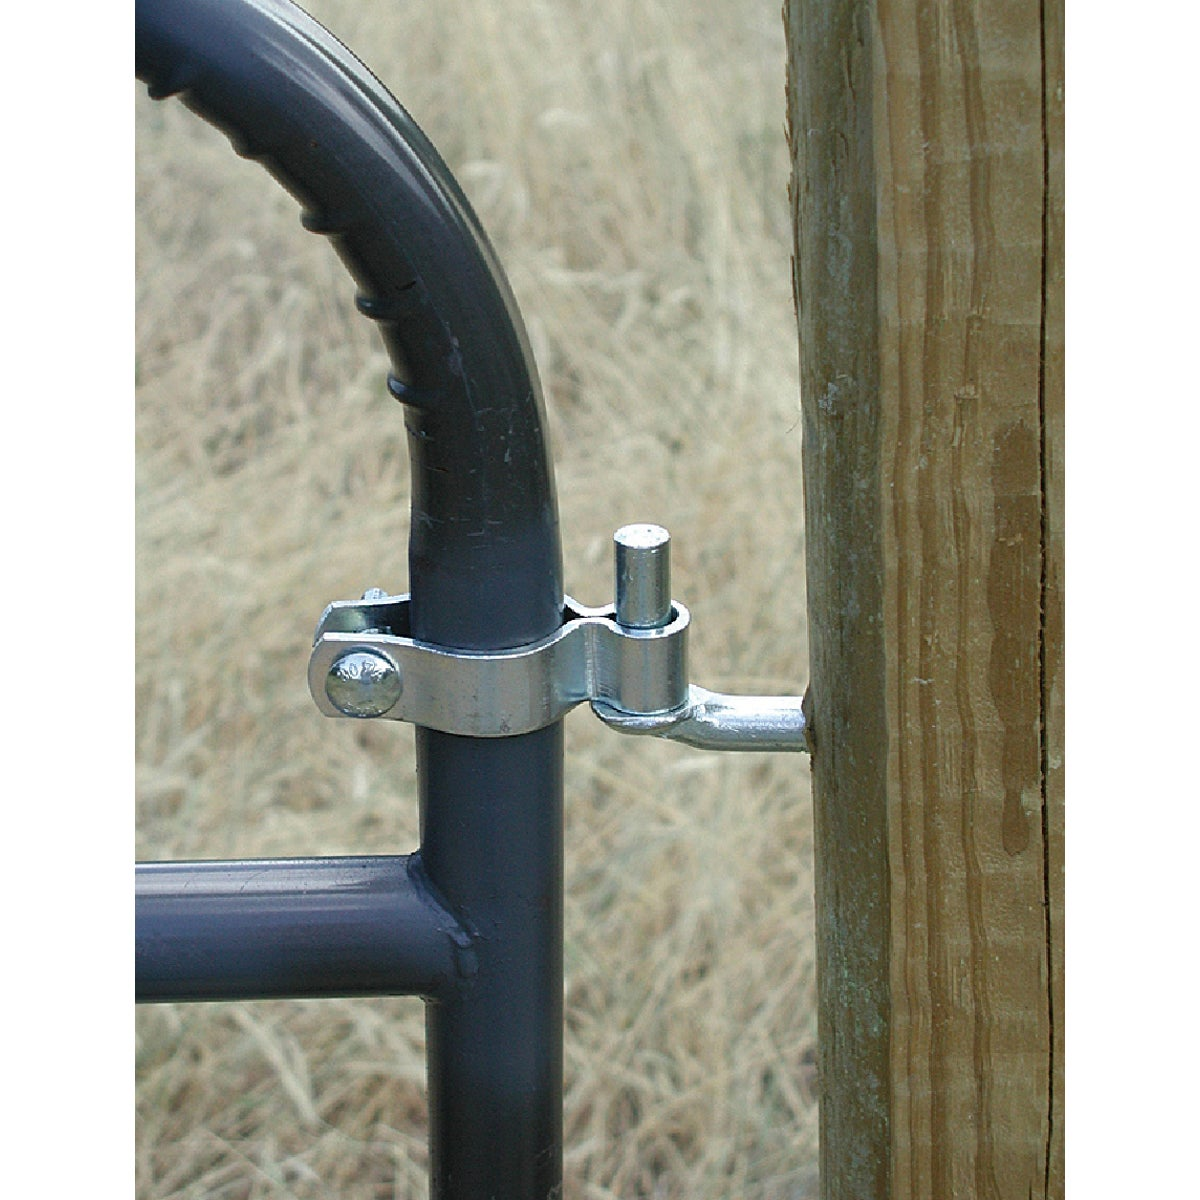 GATE HINGE KIT